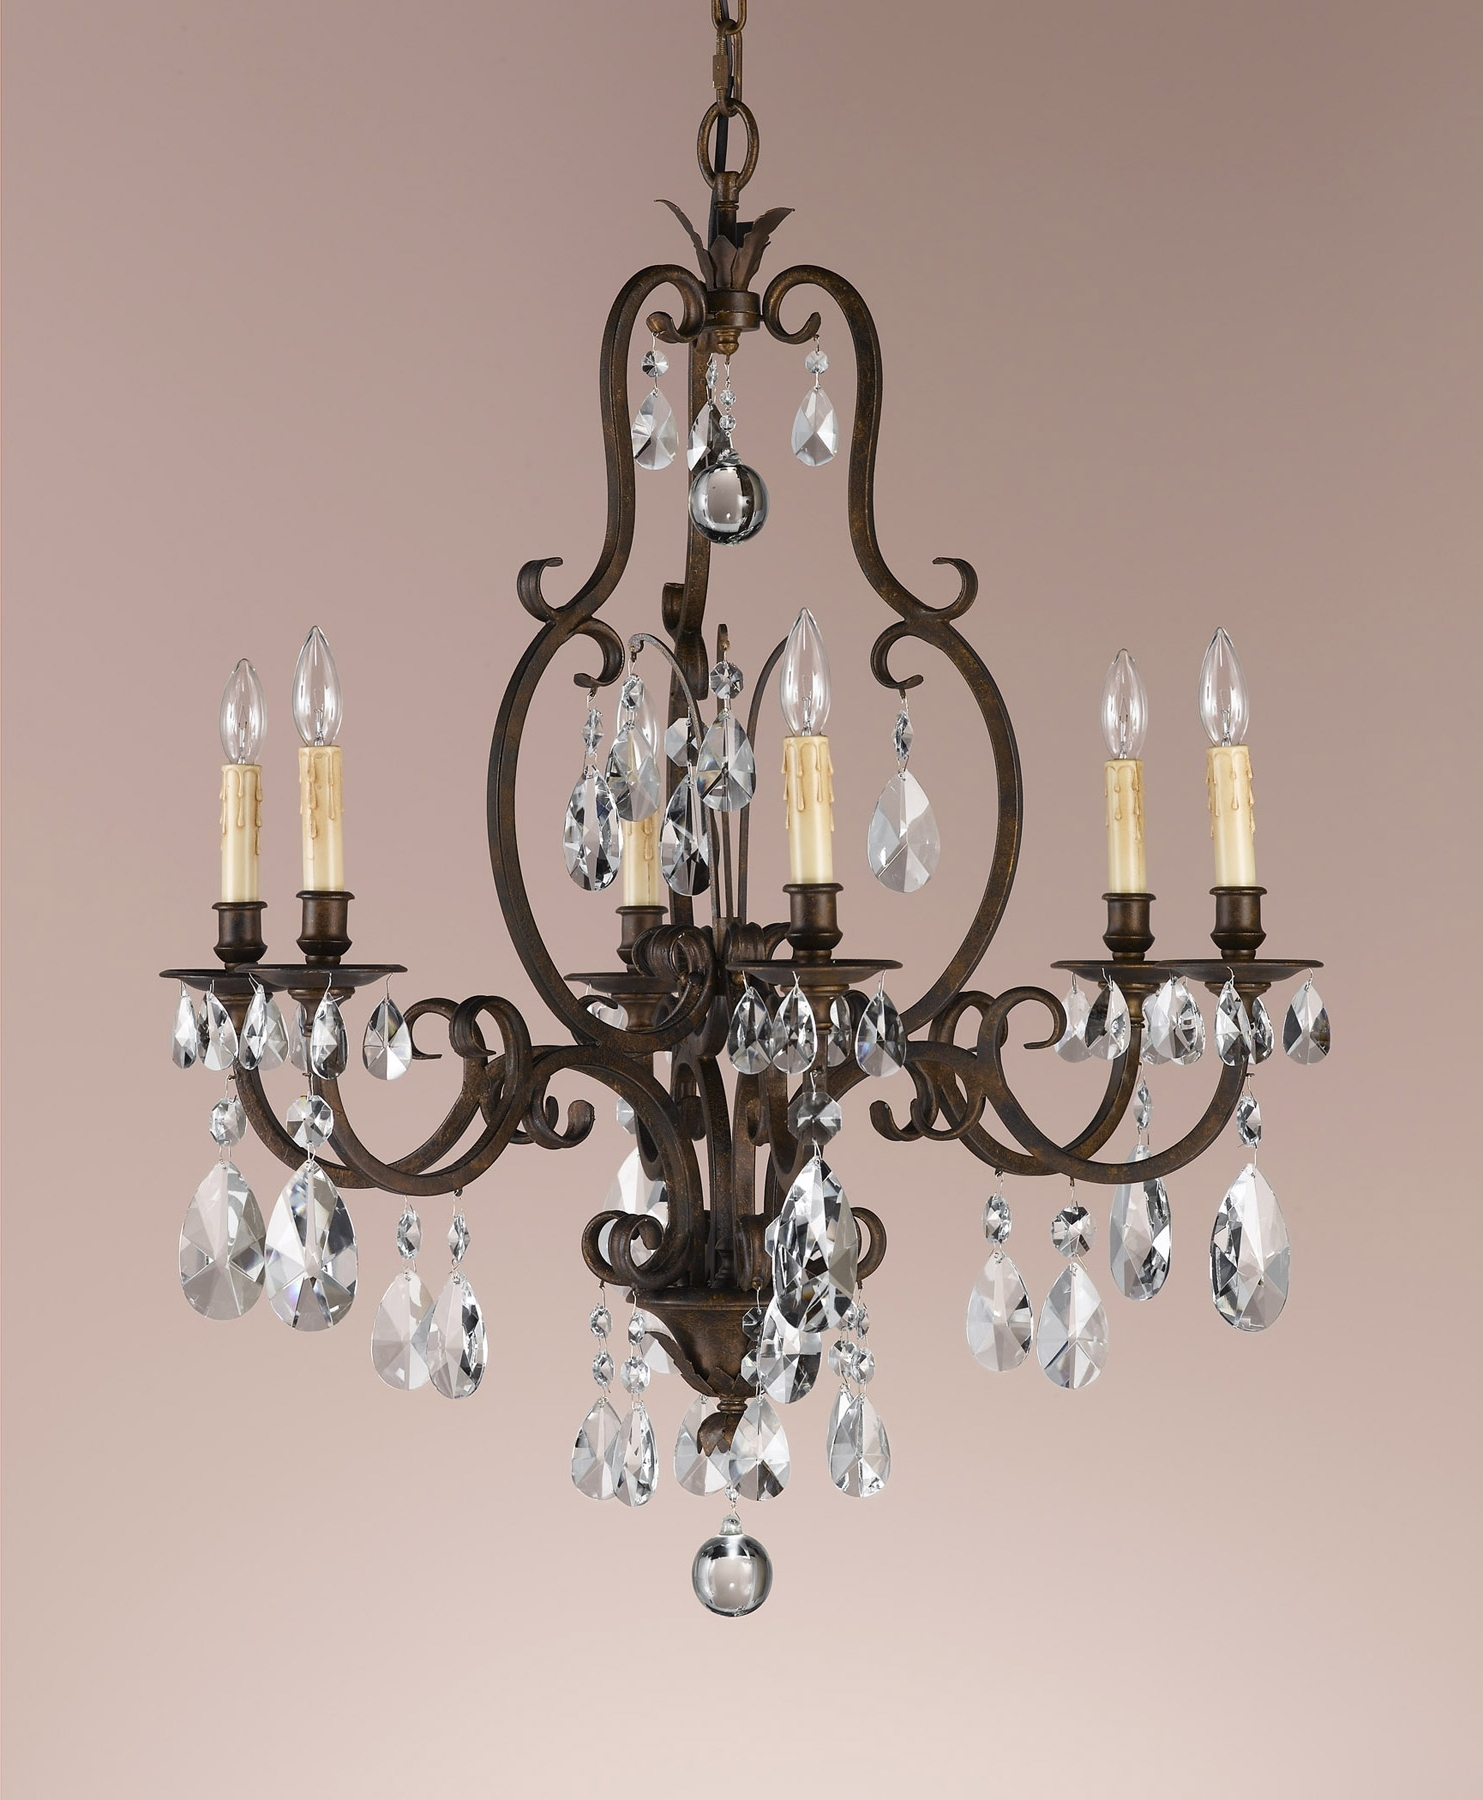 Famous Feiss F2228/6ats Crystal Salon Maison Six Light Chandelier Throughout Feiss Chandeliers (View 5 of 20)